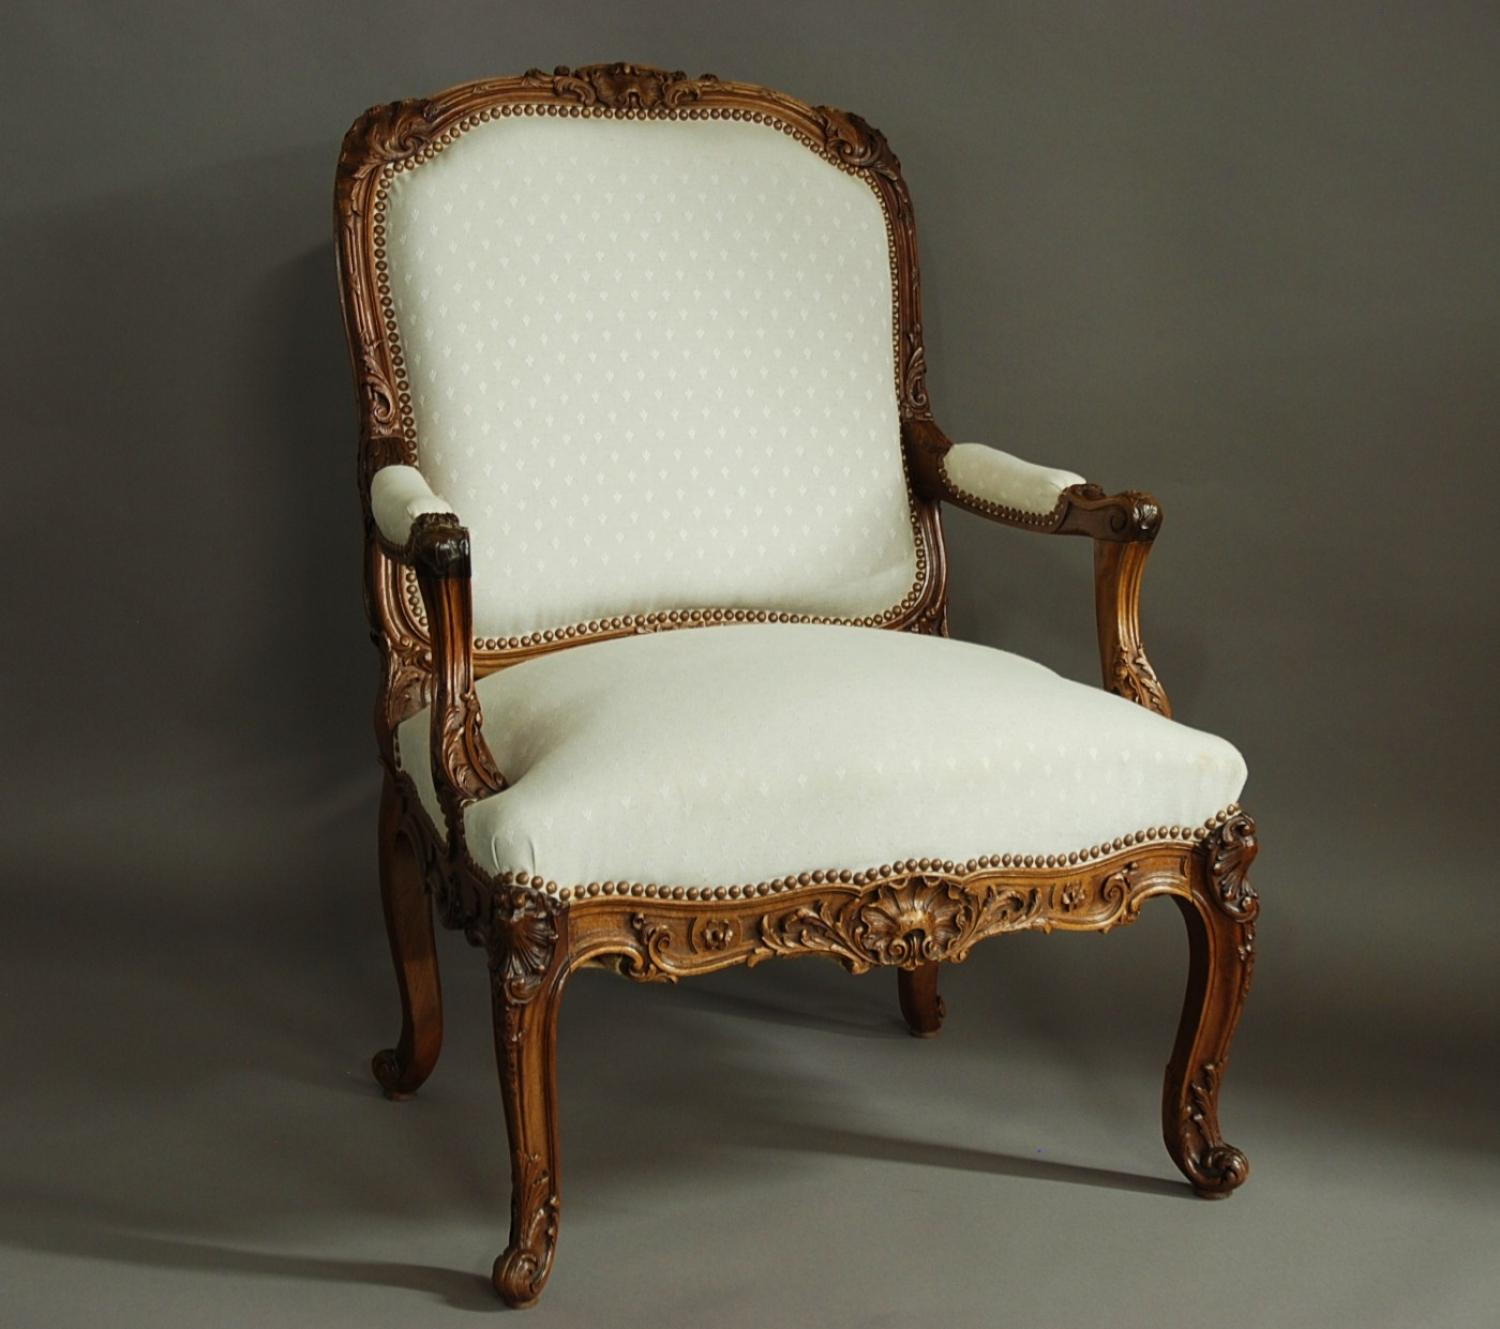 French late 19th century walnut fauteuil